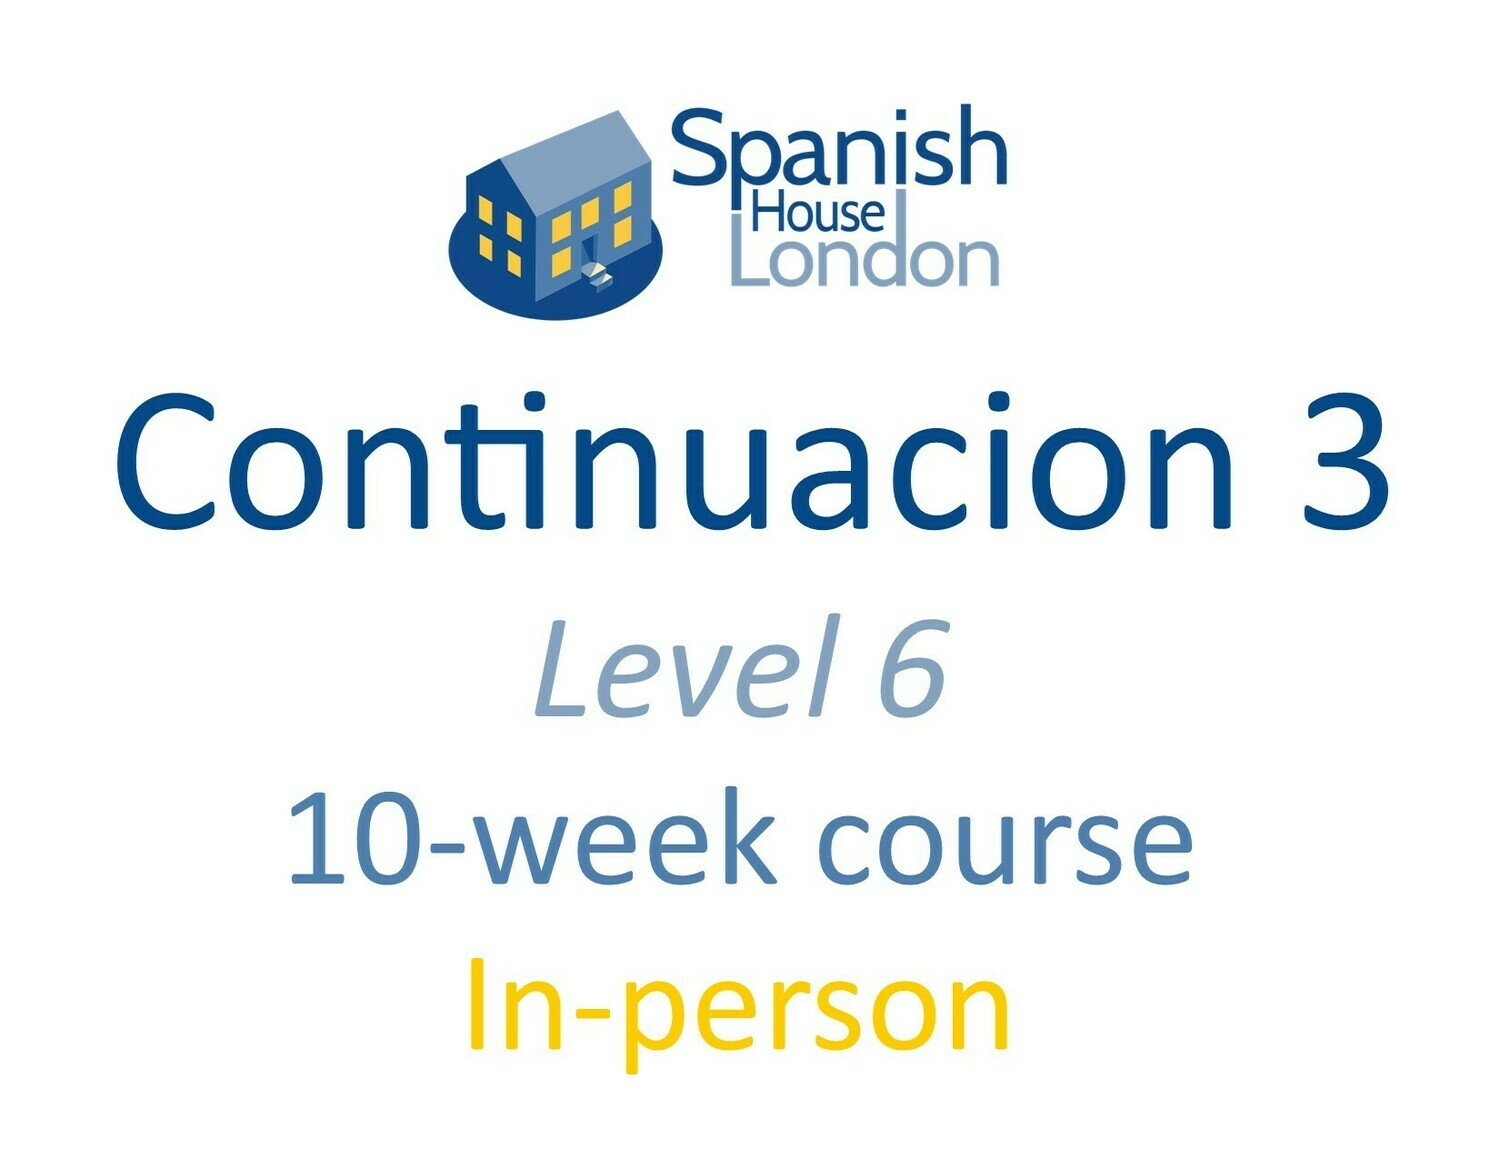 Continuacion 3 Course starting on 12th October at 6pm in Clapham North